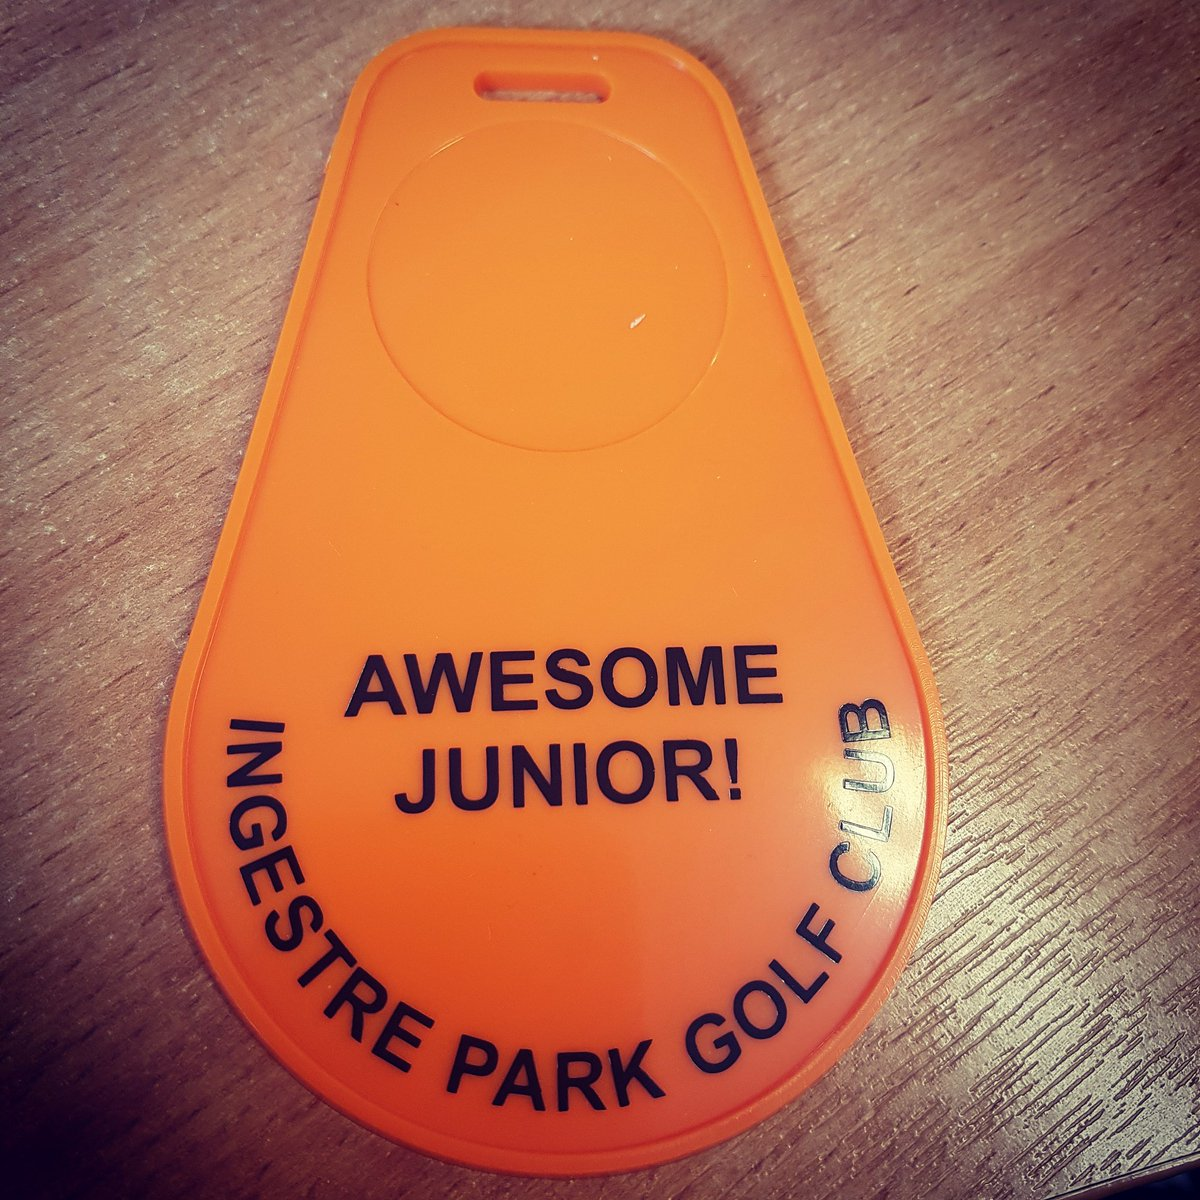 """test Twitter Media - Great weekend of coaching our """"Awesome Juniors"""" 2 juniors more signed up for membership. Junior Section is growing! #growthegame #getintogolf #welovegolf @MidlandsGolfer @EnglandGolf @staffsgolf @GolfRootsHQ @ChaseGrammar @thejazzygolfer @TheClub https://t.co/Zr7gWedE8S"""